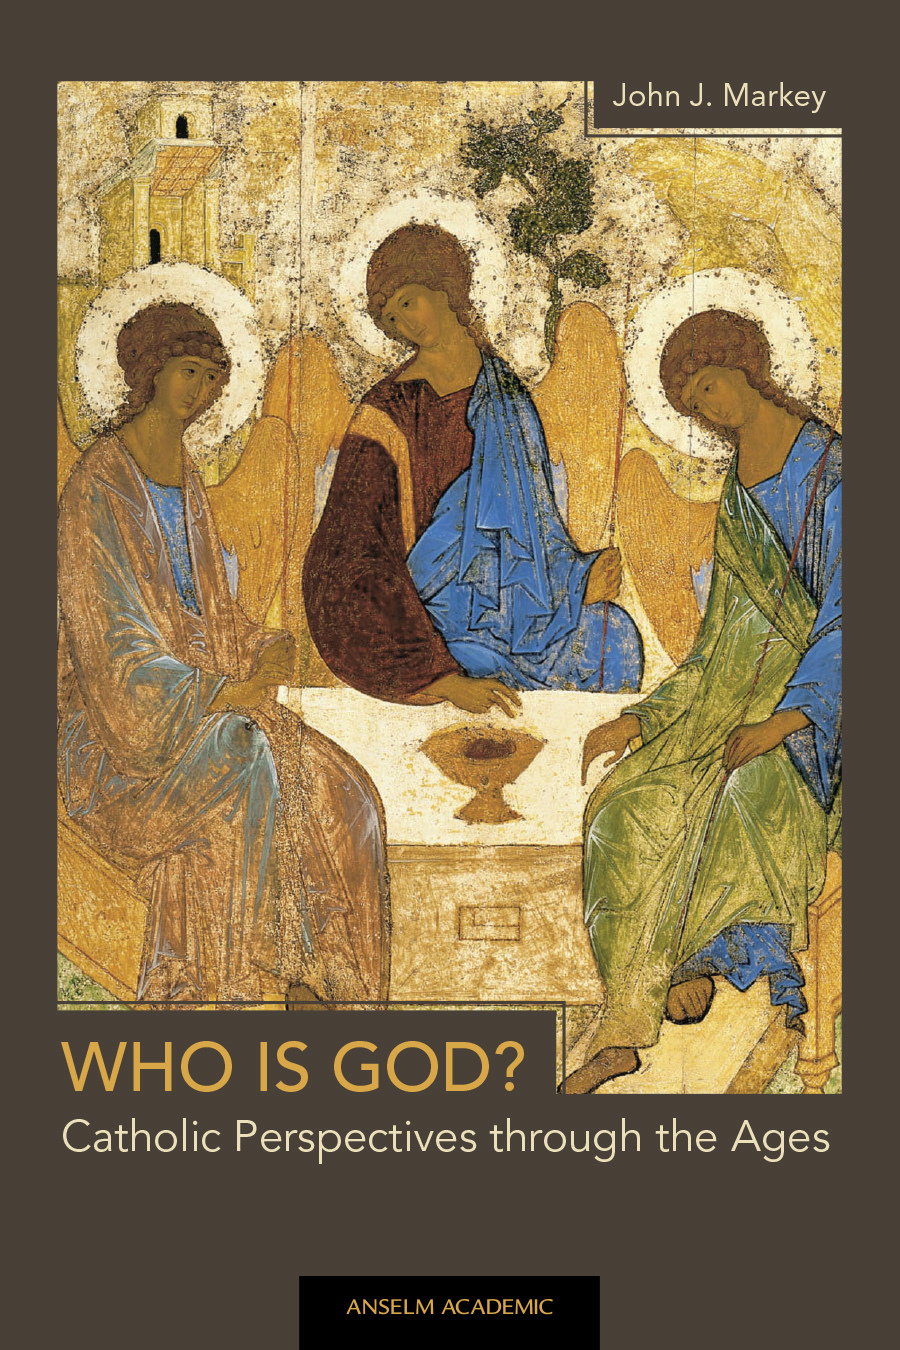 Who Is God? Catholic Perspectives through the Ages - ePub